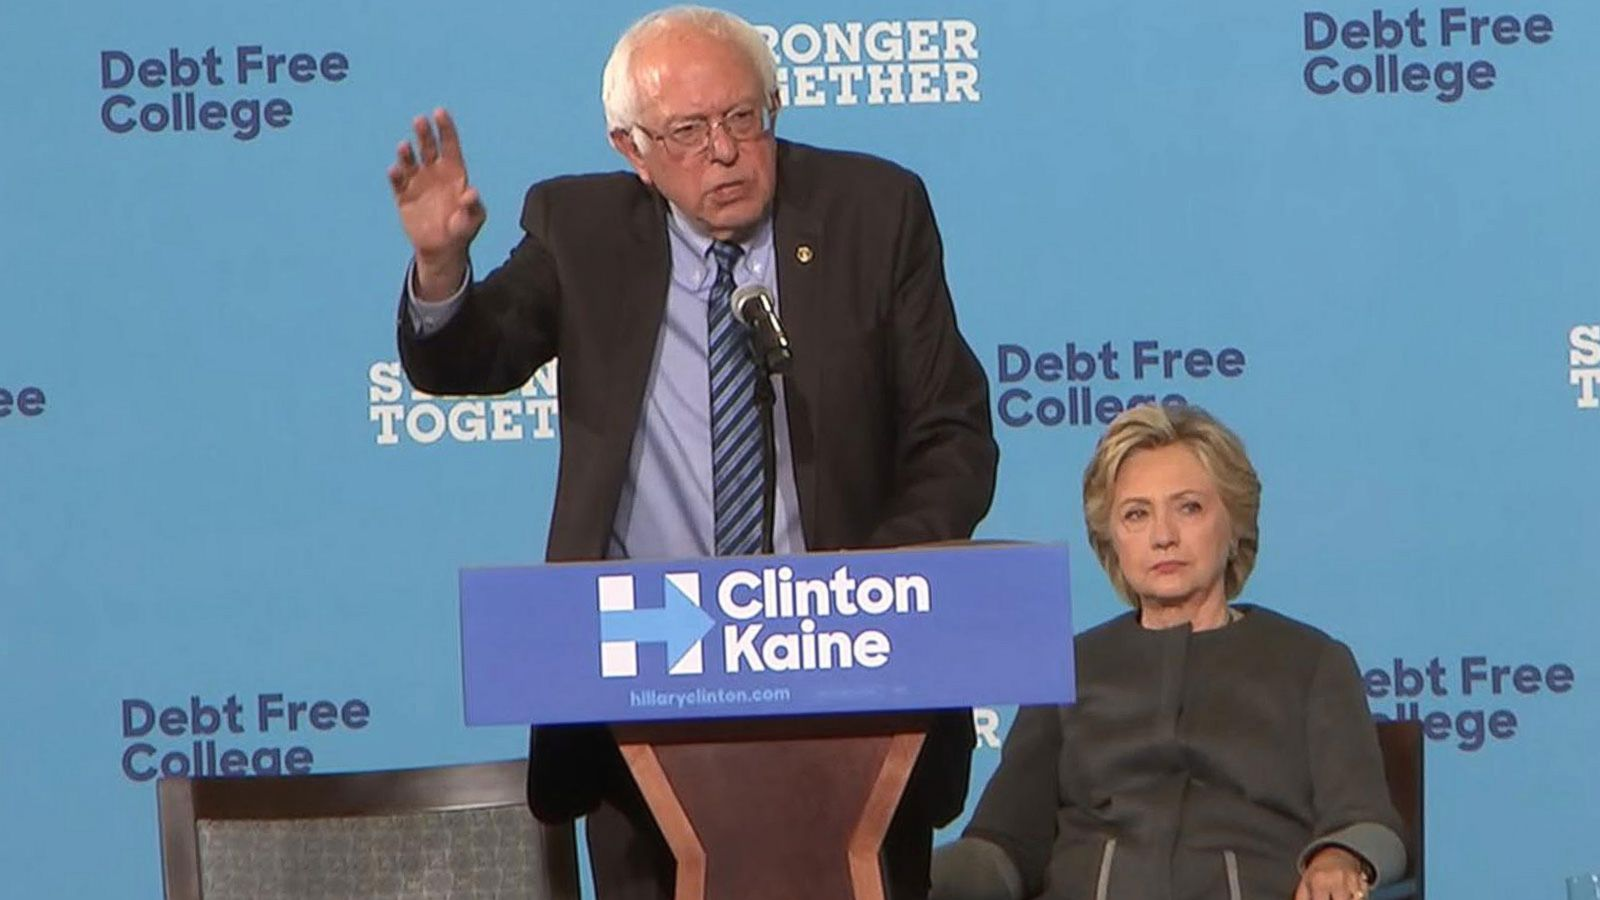 VIDEO: Bernie Sanders, Hillary Clinton Promote 'Debt Free College' Plan